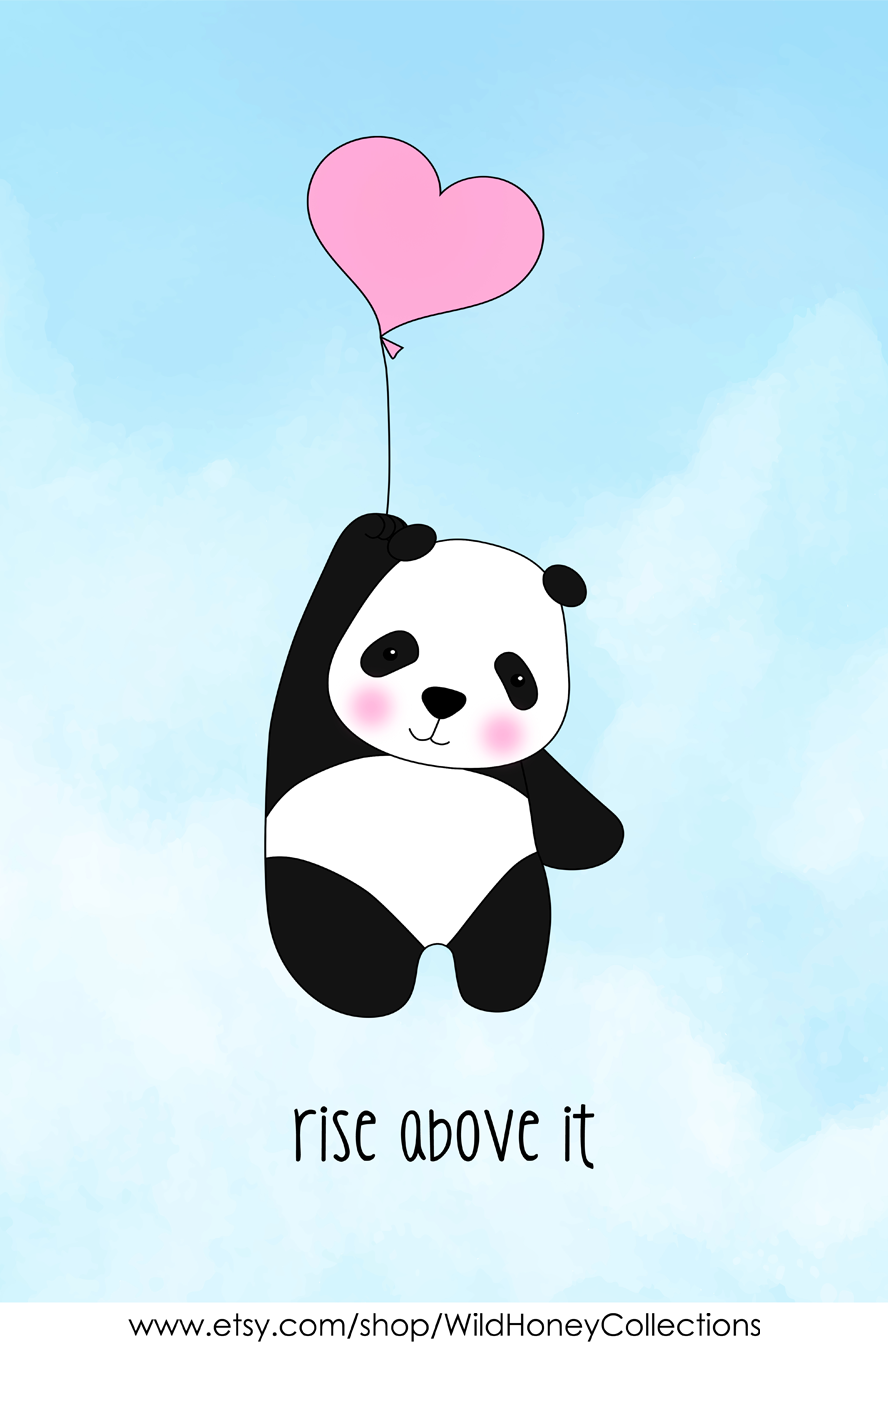 Rise Above It Cute Panda With Pink Heart Balloon Etsy In 2021 Cute Cartoon Drawings Android Wallpaper Art Wall Printables